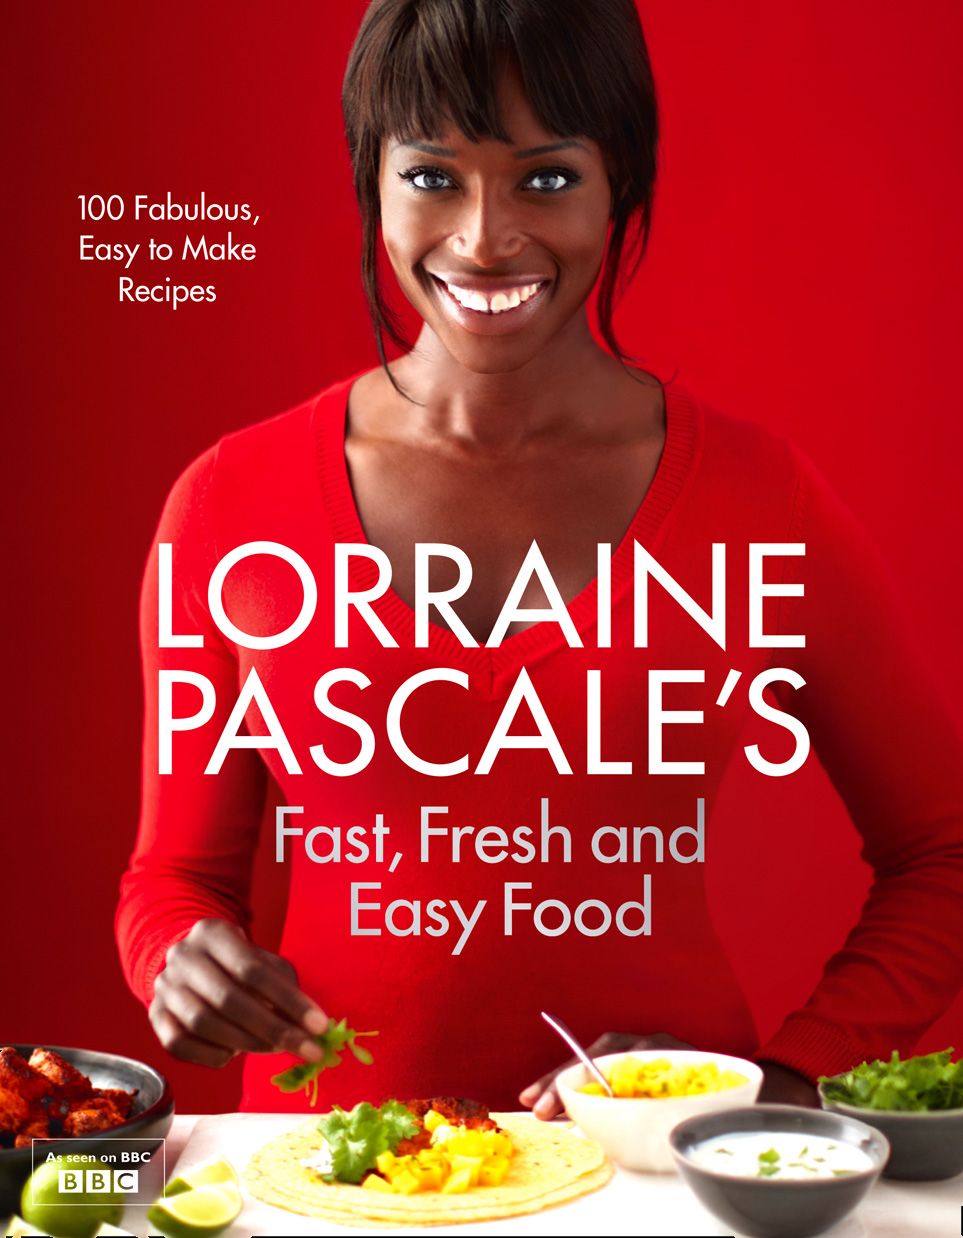 Lorraine Pascale?s Fast,  Fresh and Easy Food